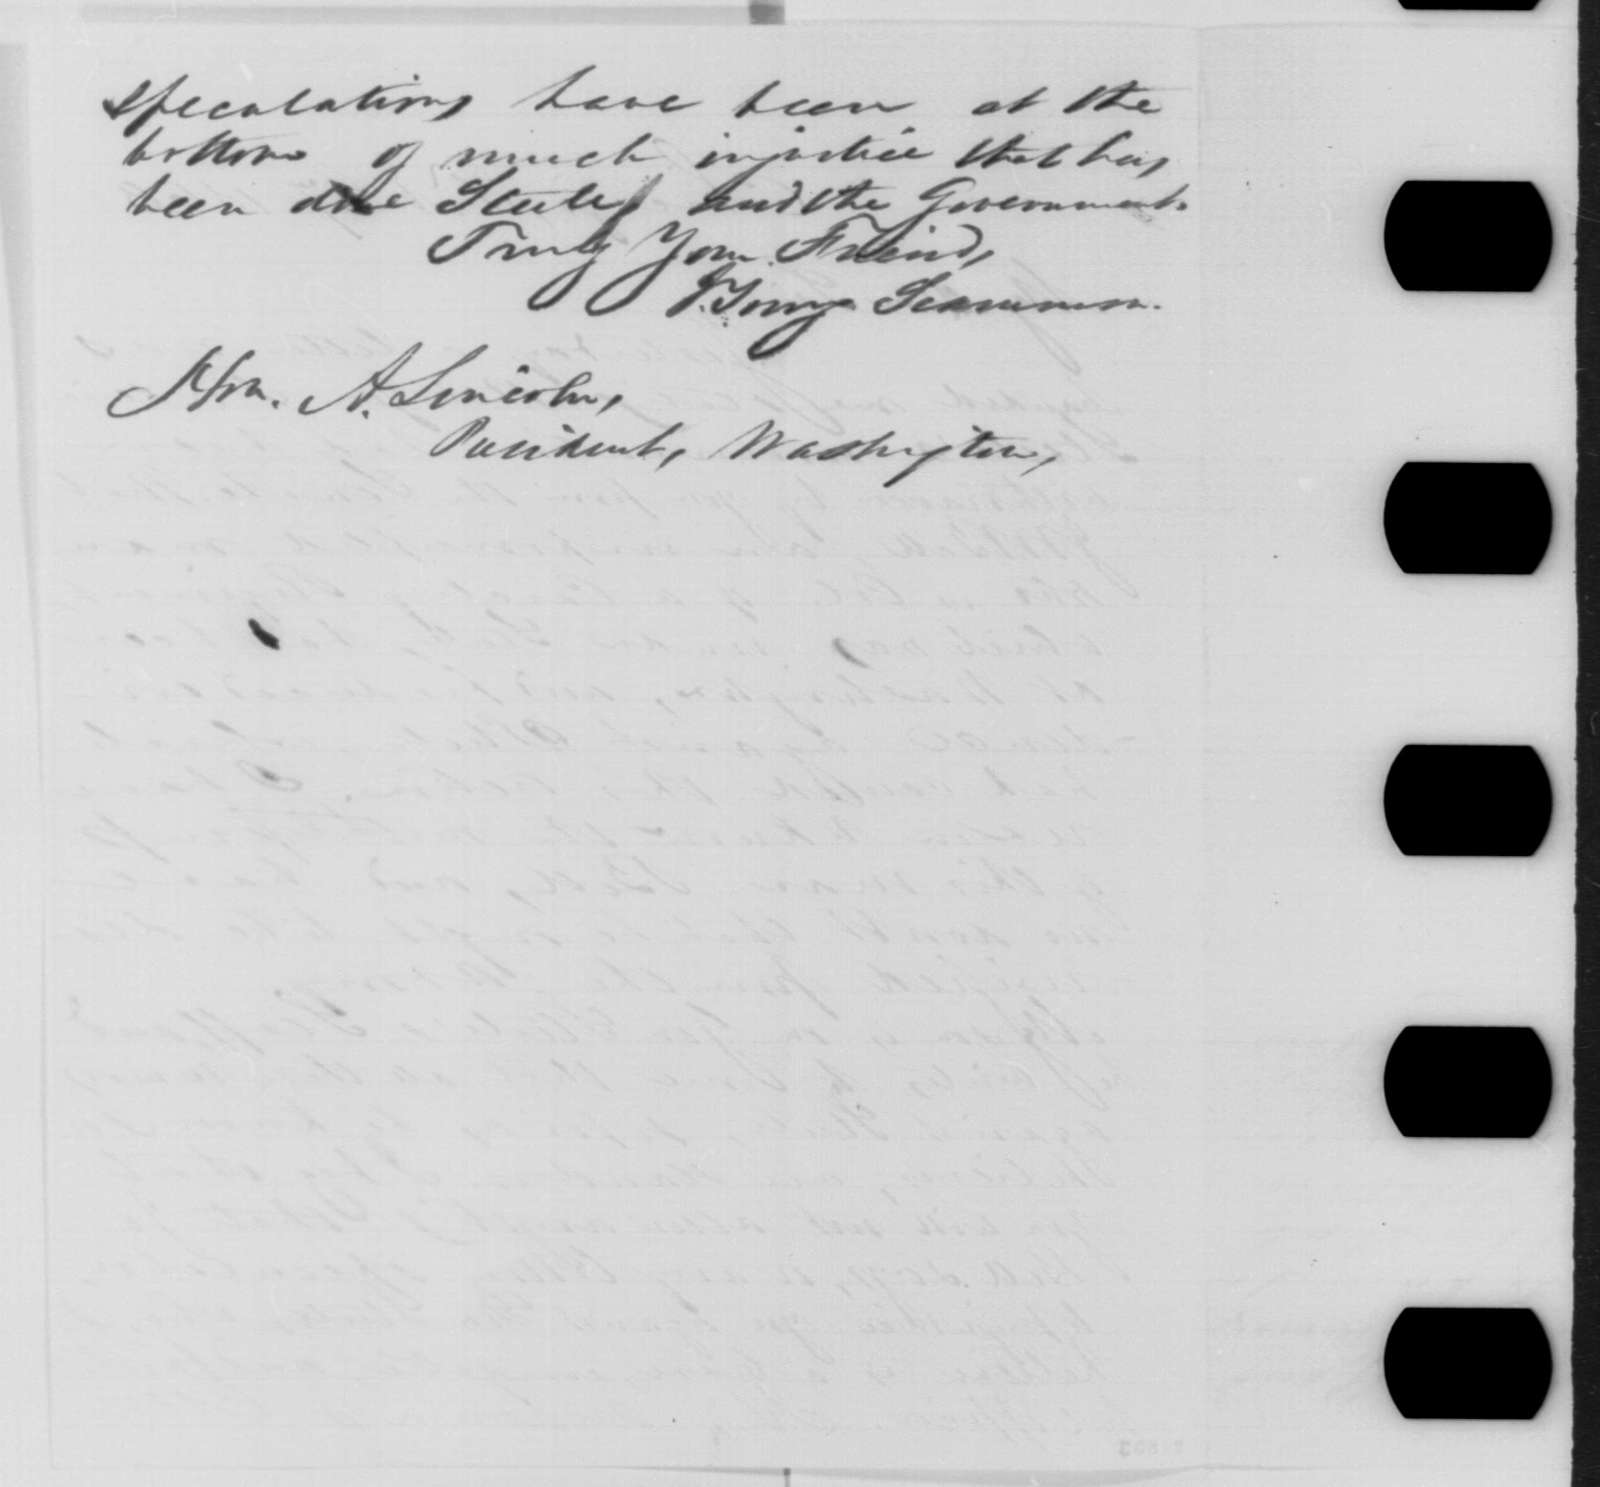 J. Young Scammon to Abraham Lincoln, Tuesday, February 17, 1863  (Writes on behalf of General Frederick Steele)